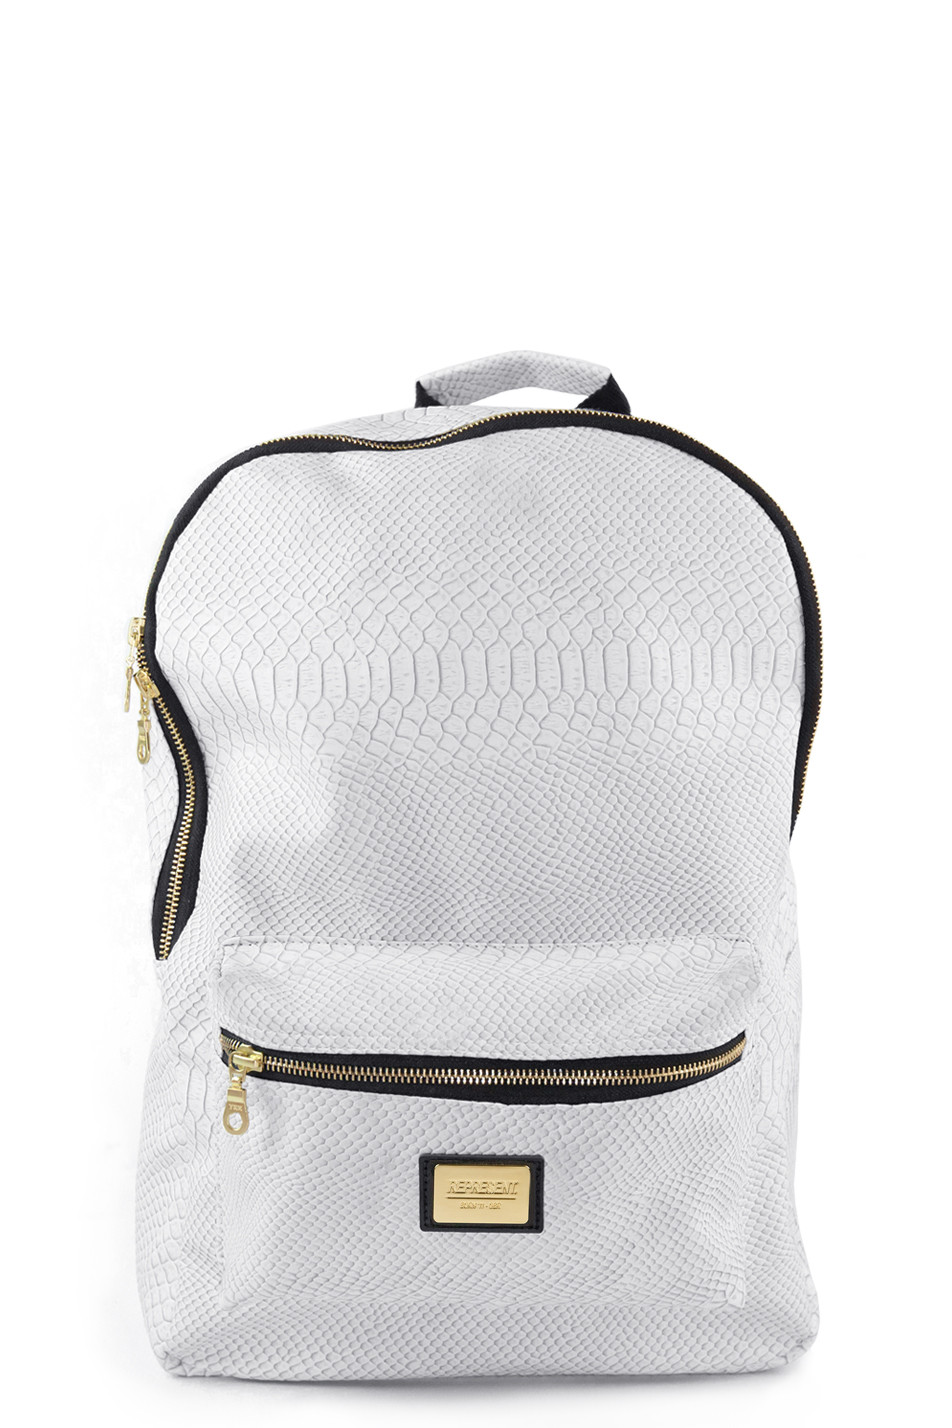 off white python backpack represent clo. Black Bedroom Furniture Sets. Home Design Ideas